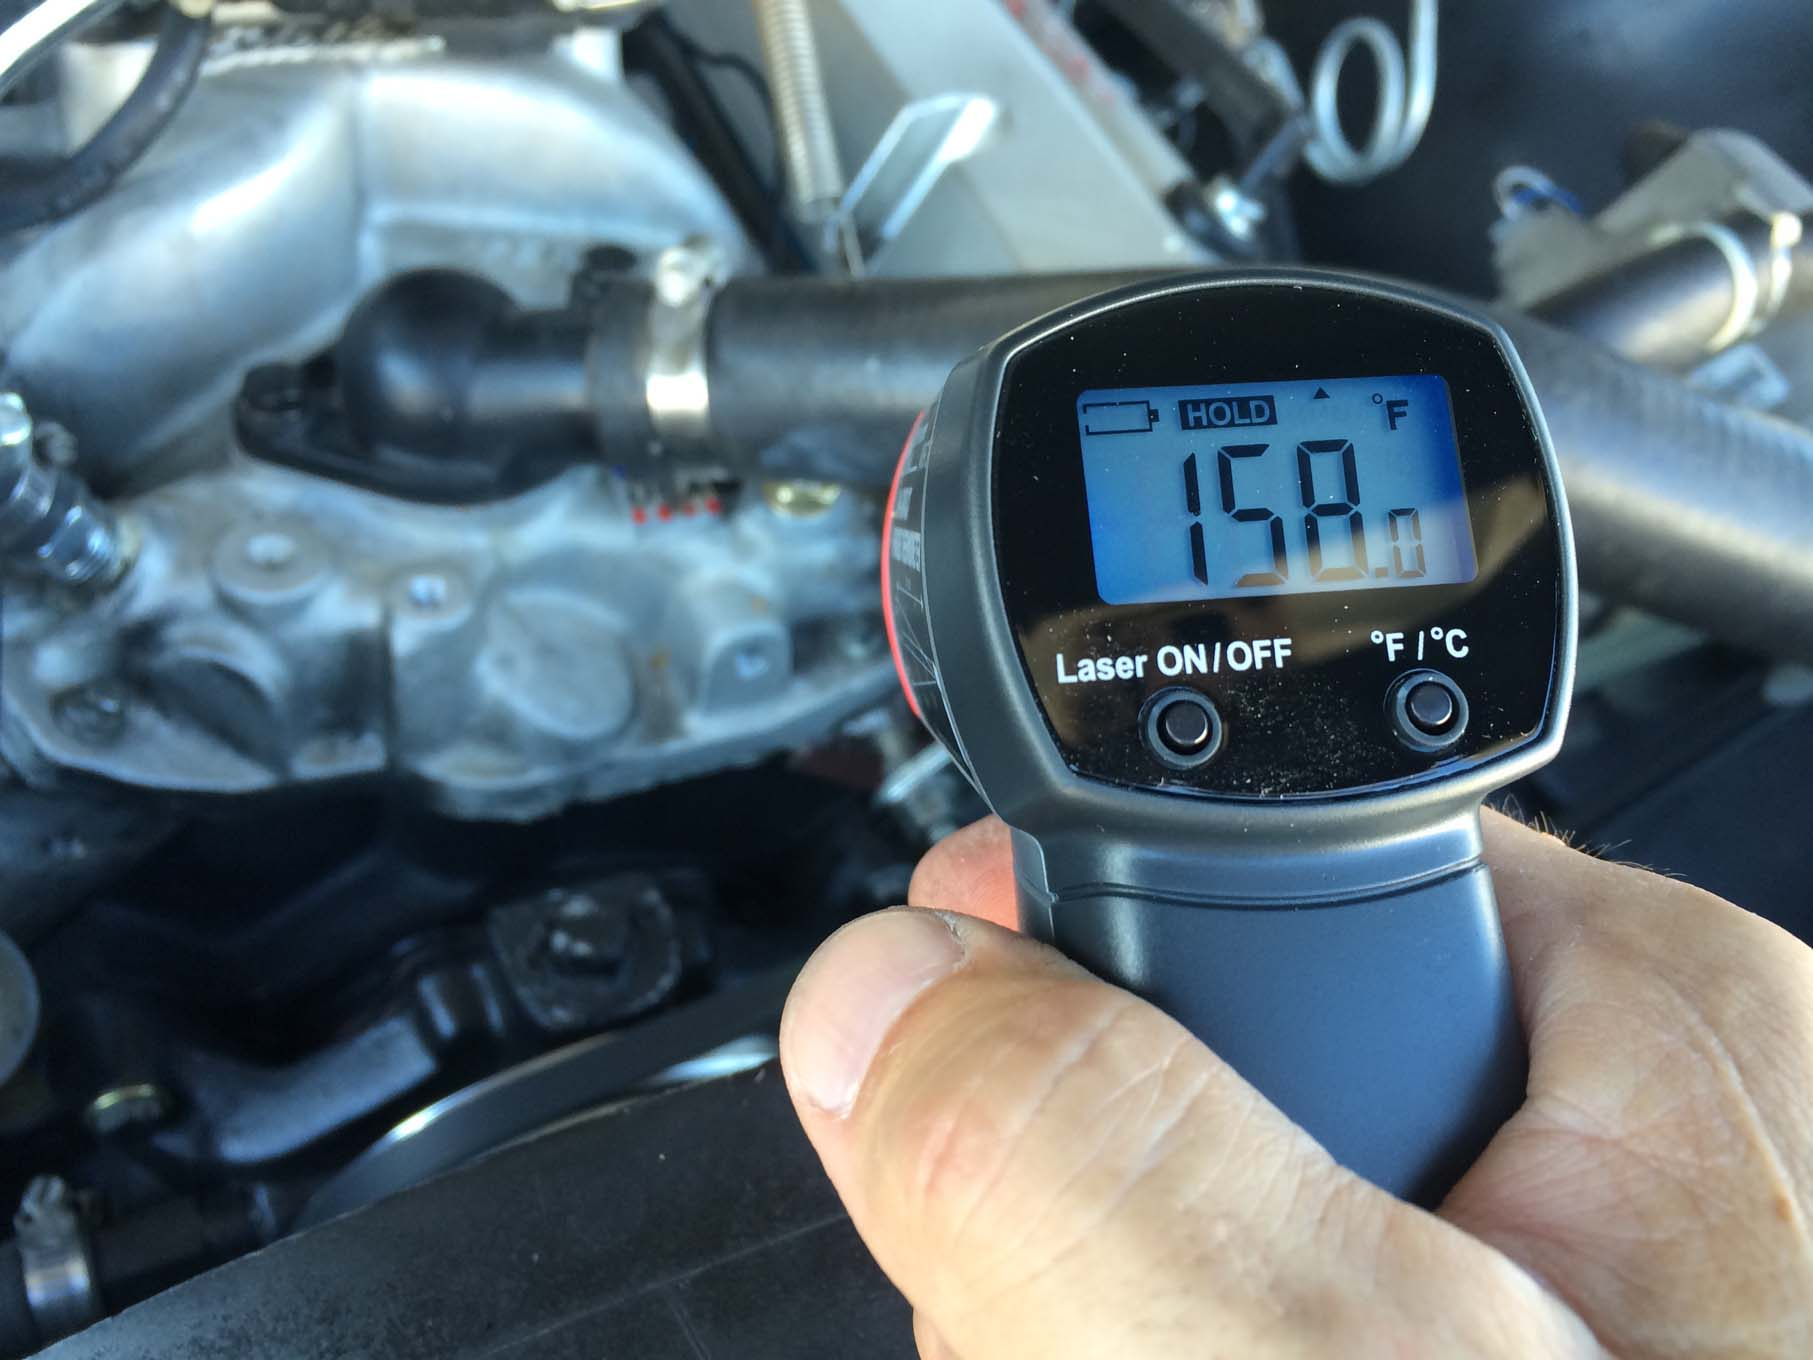 We verified the coolant temperature gauge's accuracy with a laser infrared temperature thermometer.